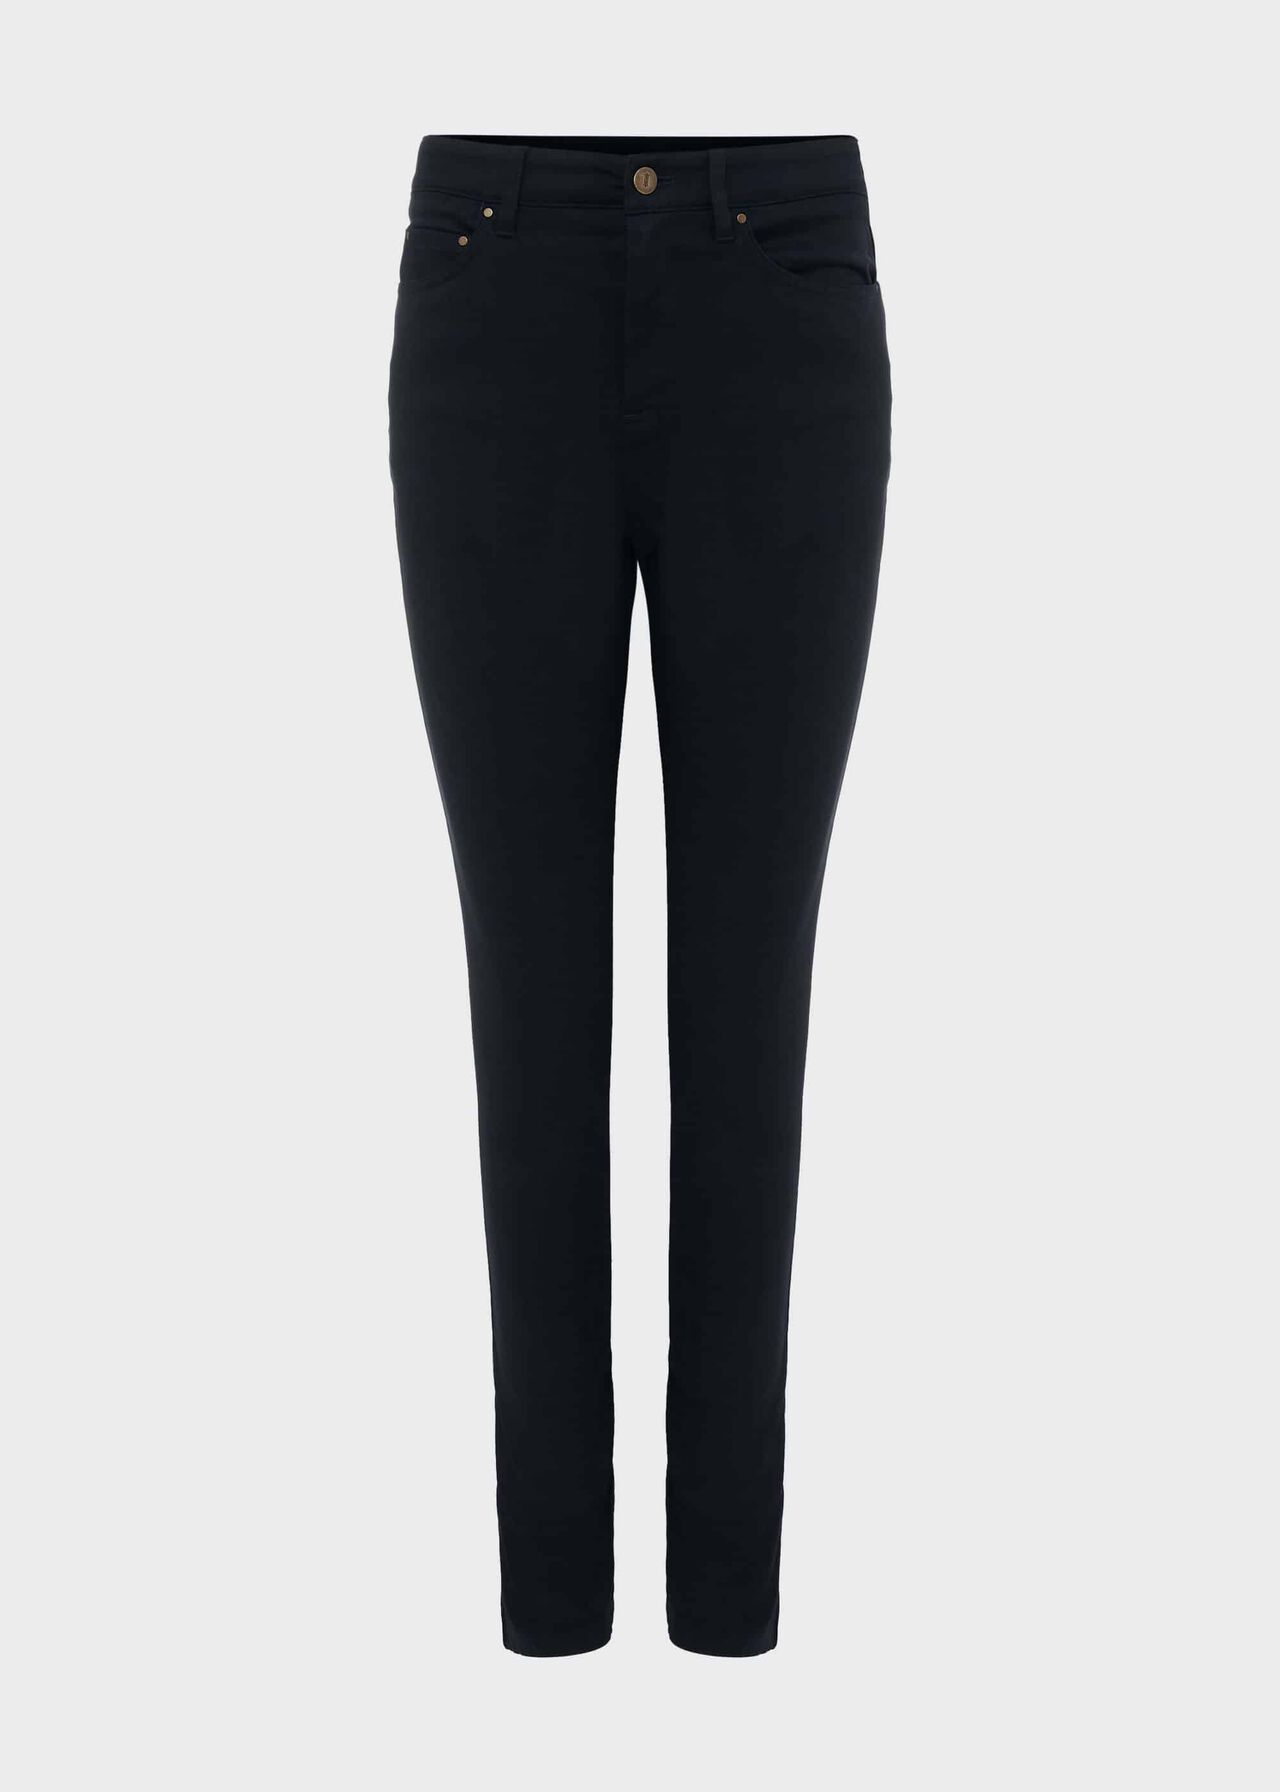 Gia Soft Touch Skinny Jeans, Navy, hi-res